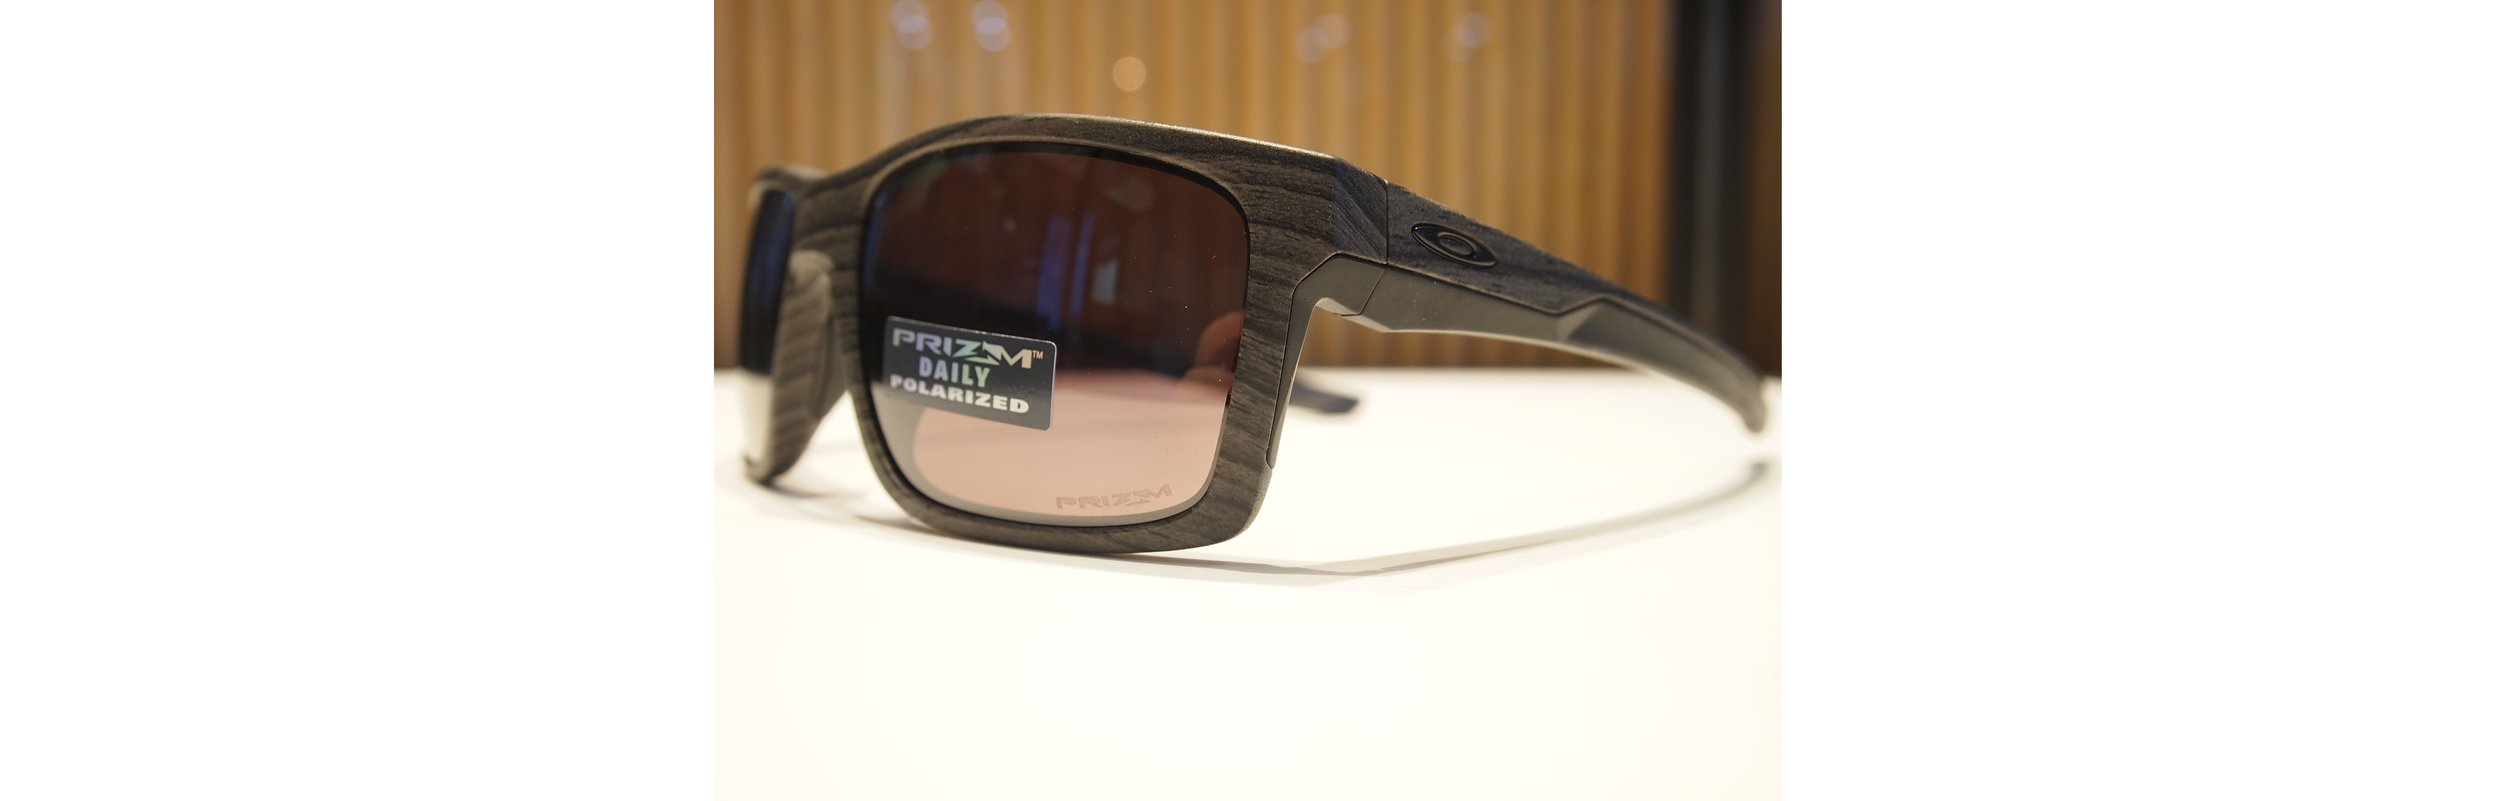 OakleyS 7B - Copy.JPG